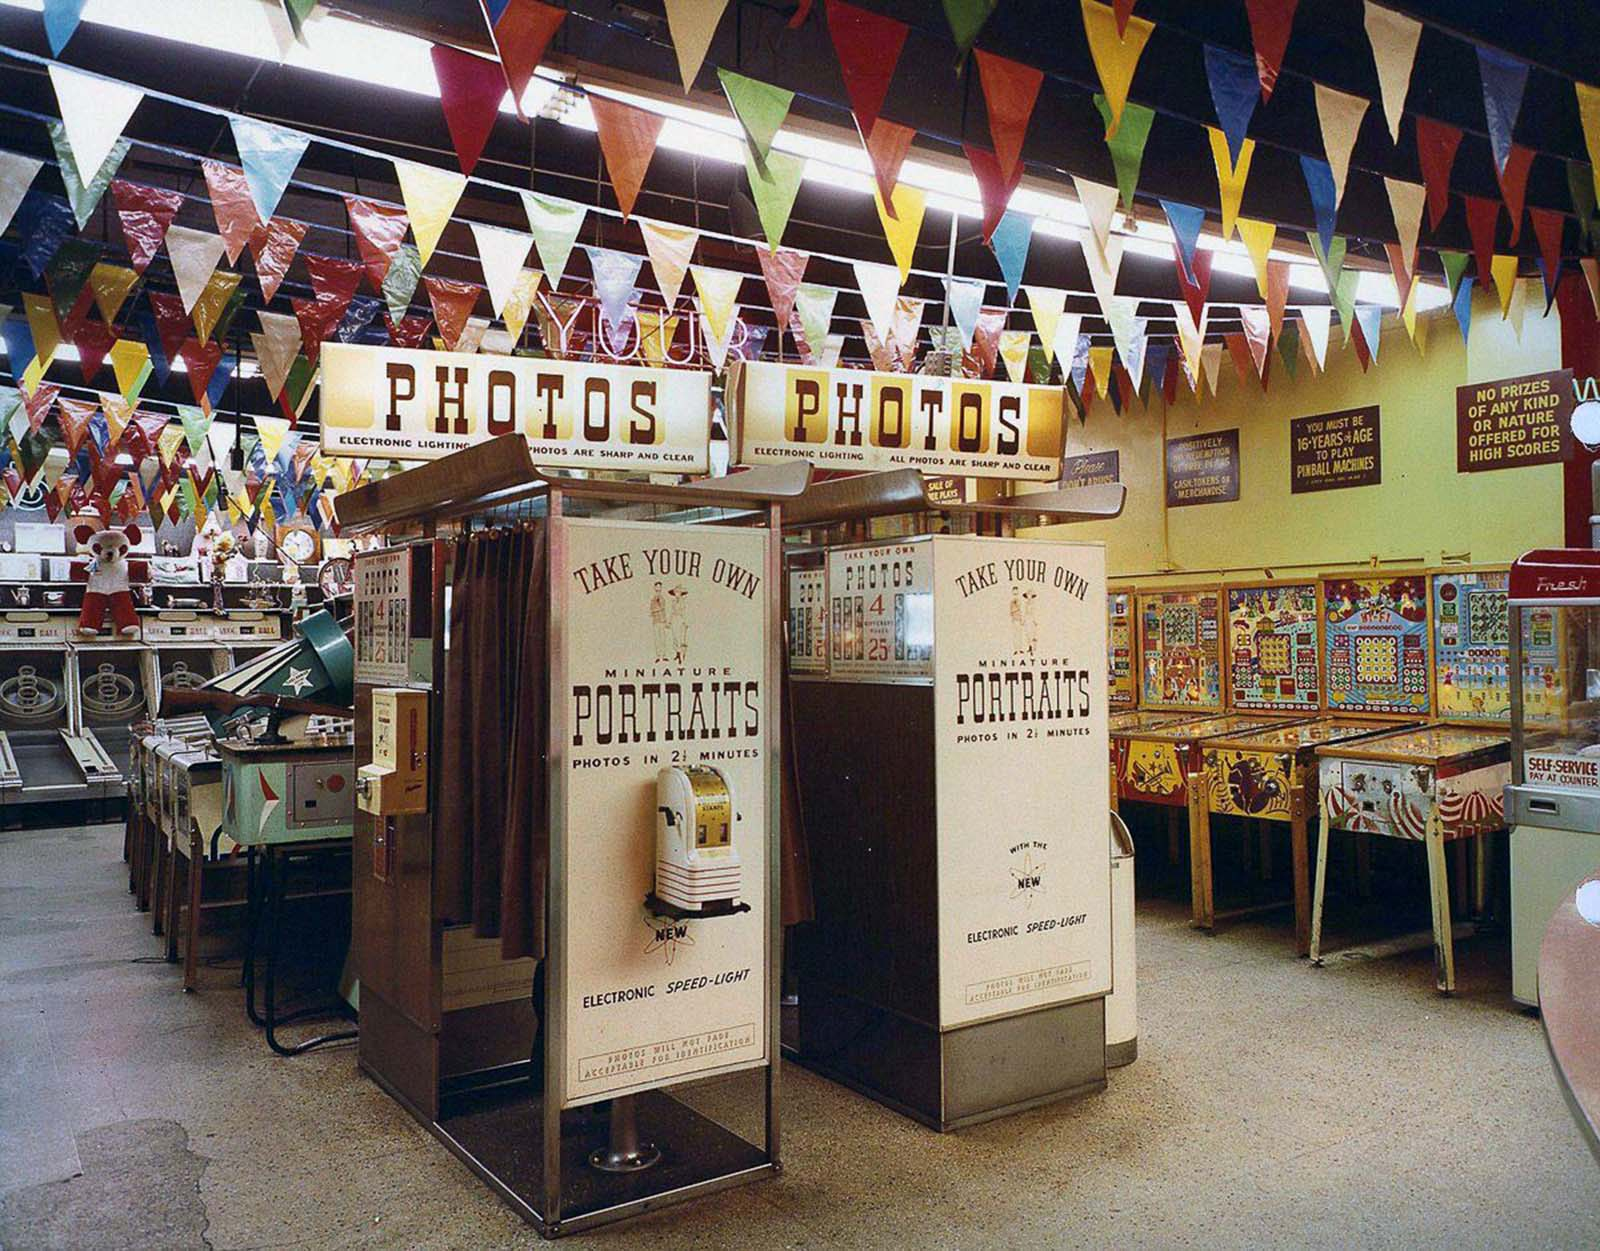 Most arcade games are video games, pinball machines, electro-mechanical games, redemption games or merchandisers.